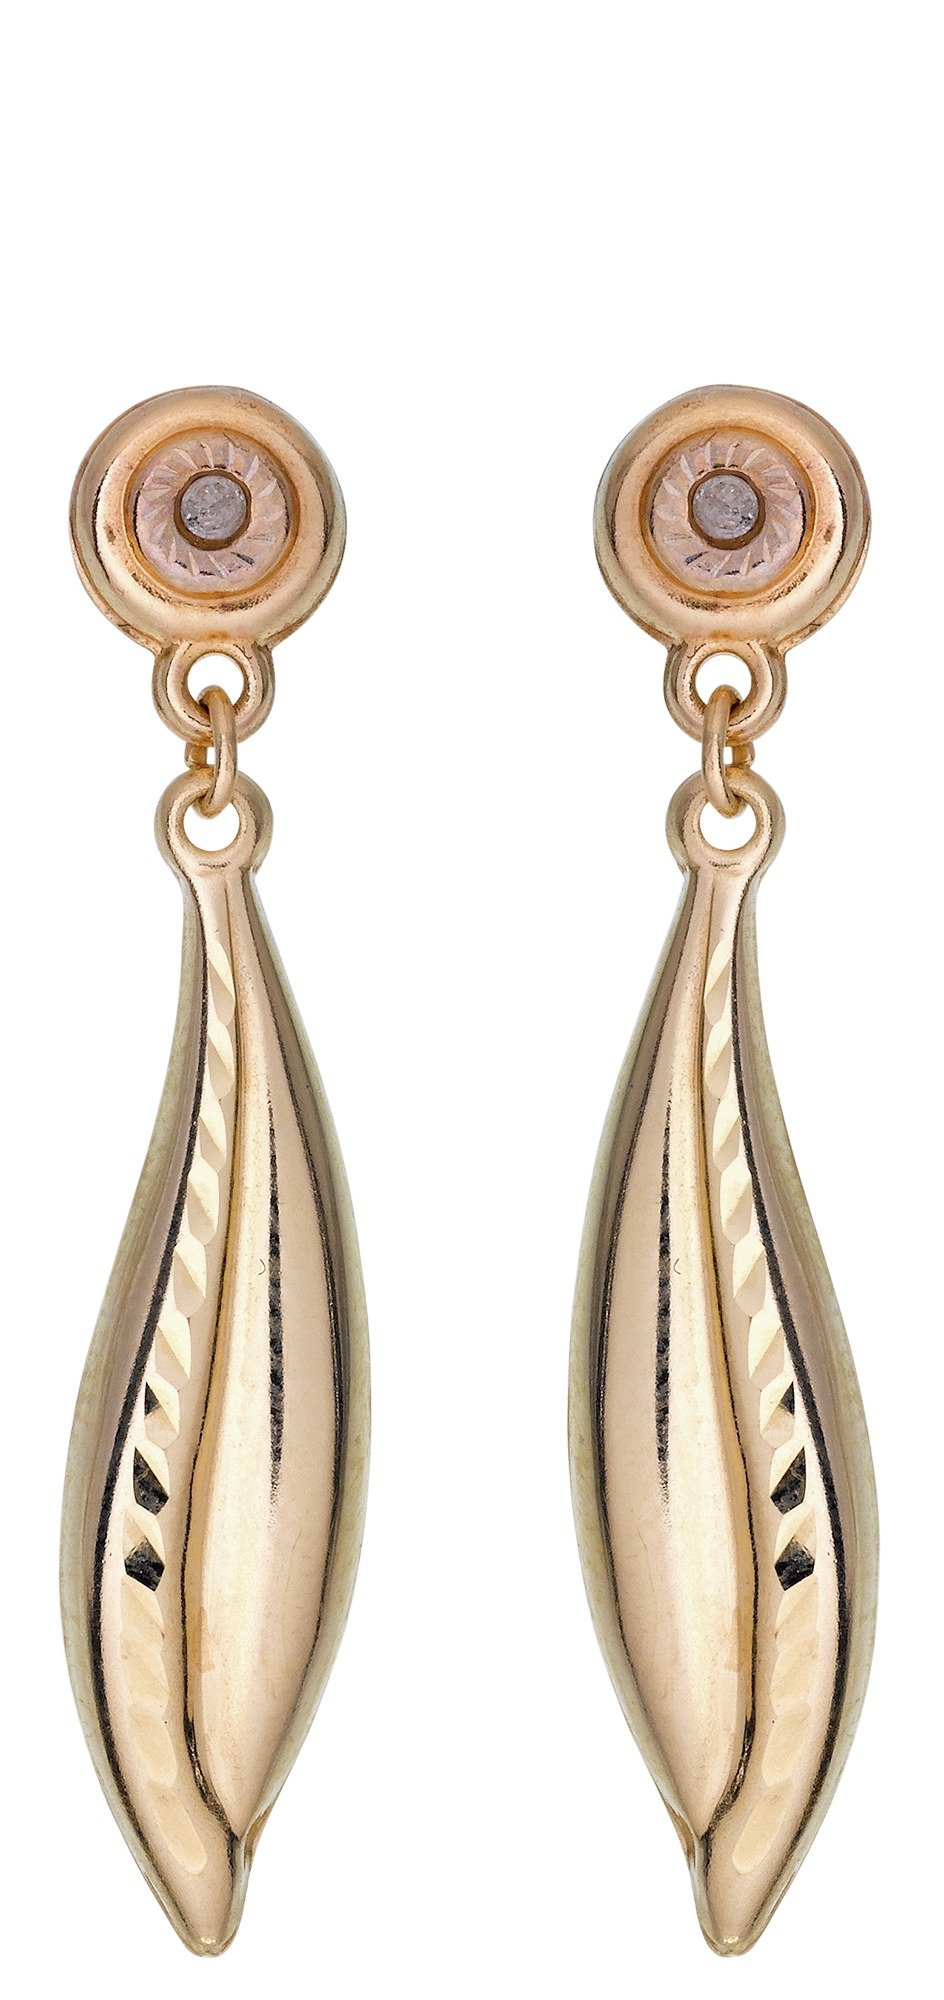 9 Carat White Gold Earrings  wearberrycom